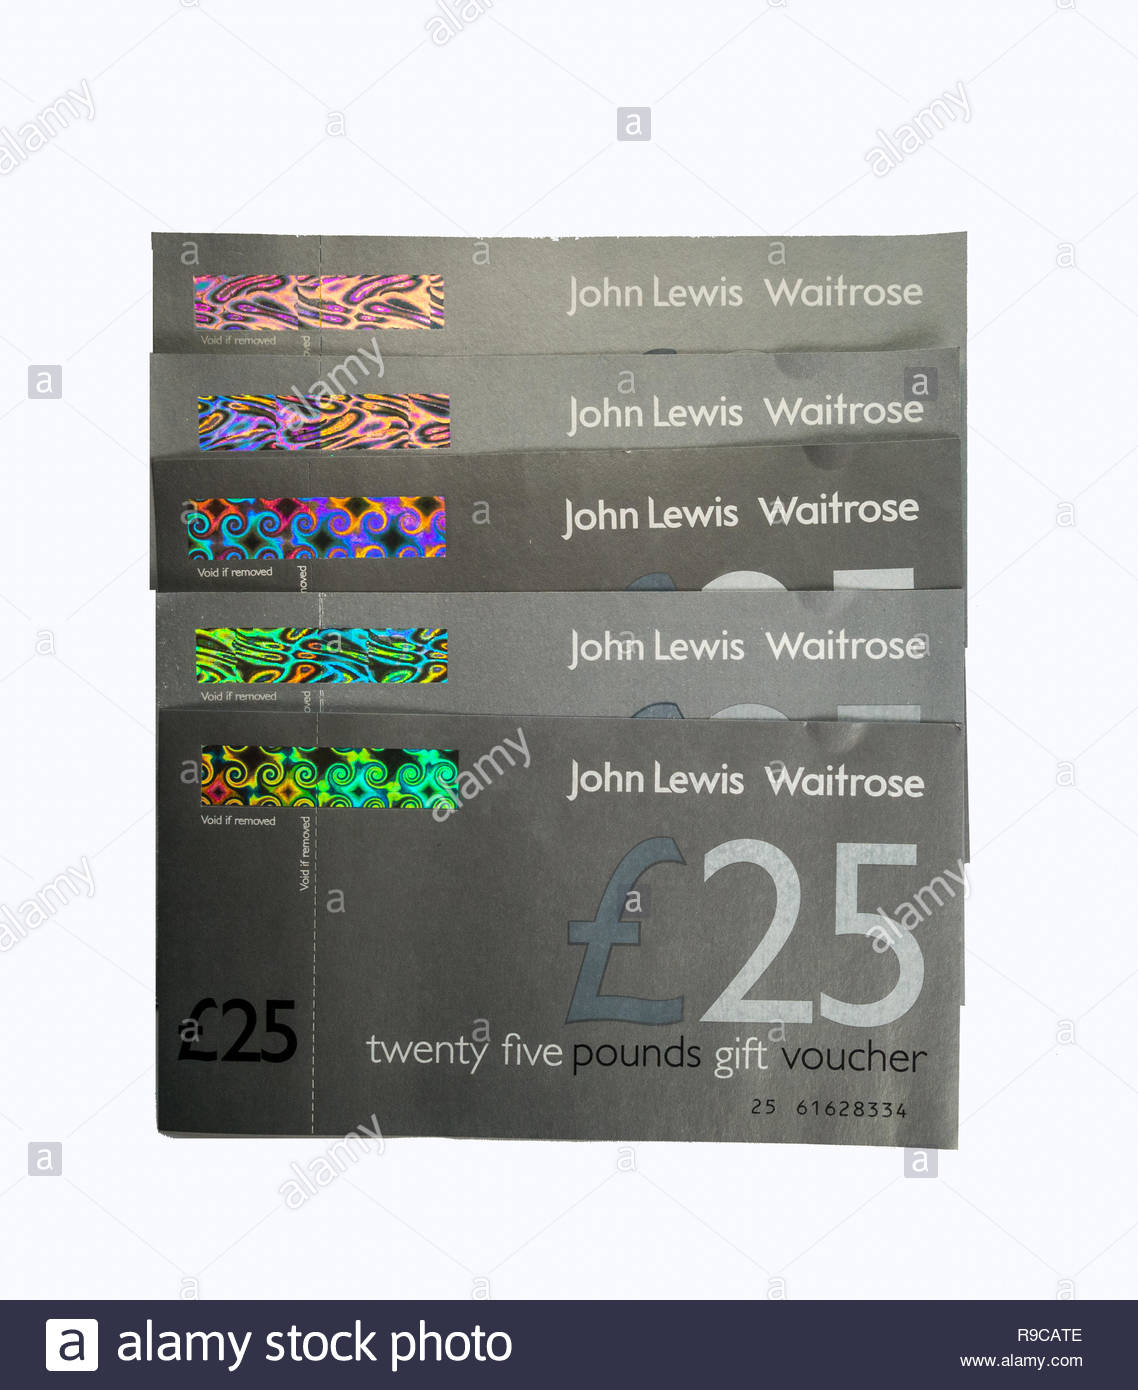 John Lewis and Waitrose gift vouchers given as a reward for spending on the JLP Partnership Credit Card - Stock Image